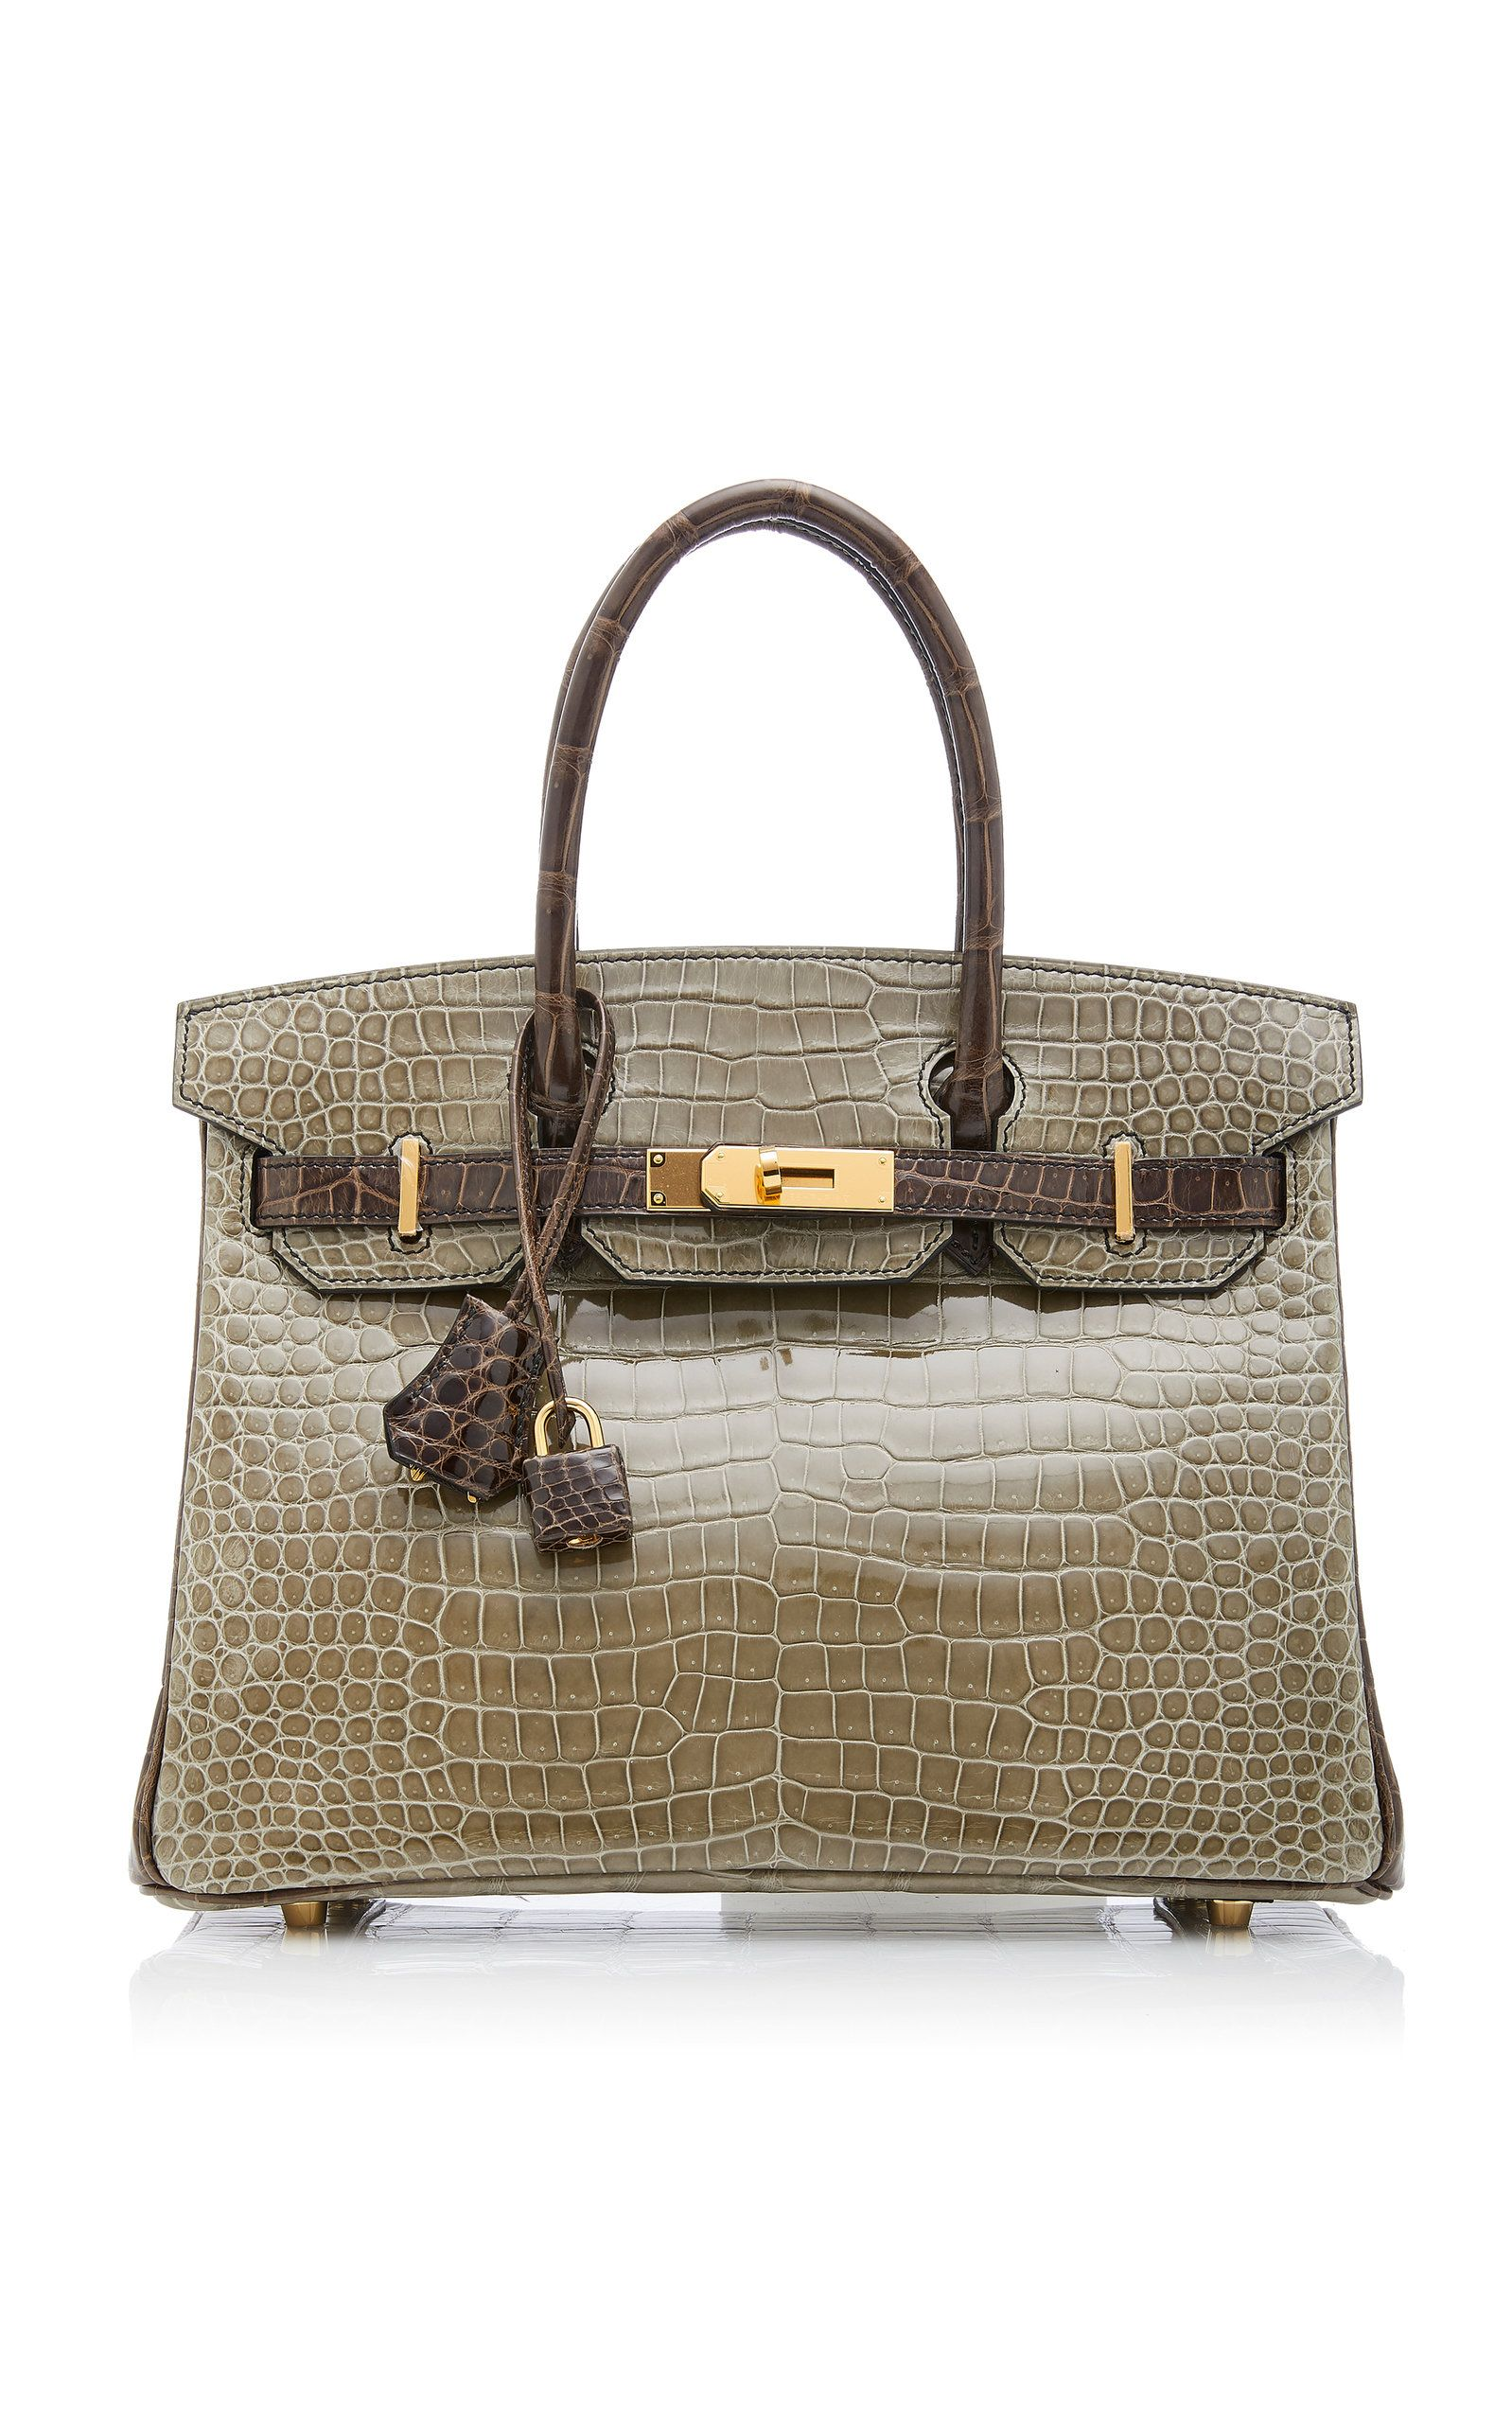 9cbe0b4031dd Hermès 30cm Gris Elephant and Gris Tourterelle Crocodile Birkin by HERMÈS  VINTAGE BY HERITAGE AUCTIONS for Preorder on Moda Operandi